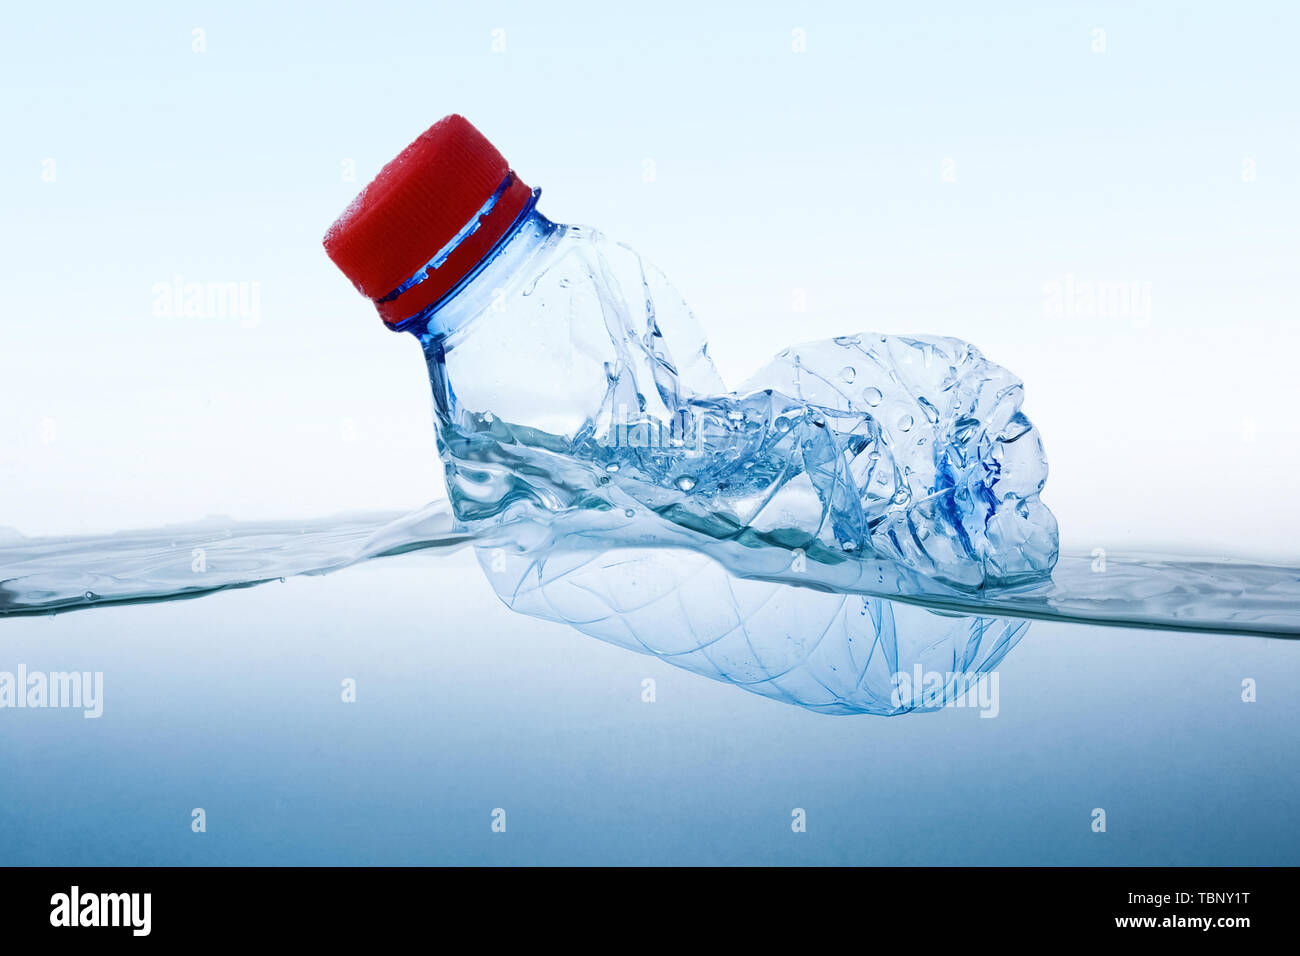 Plastic water bottles pollution in water. Environment concept. Blue background - Stock Image